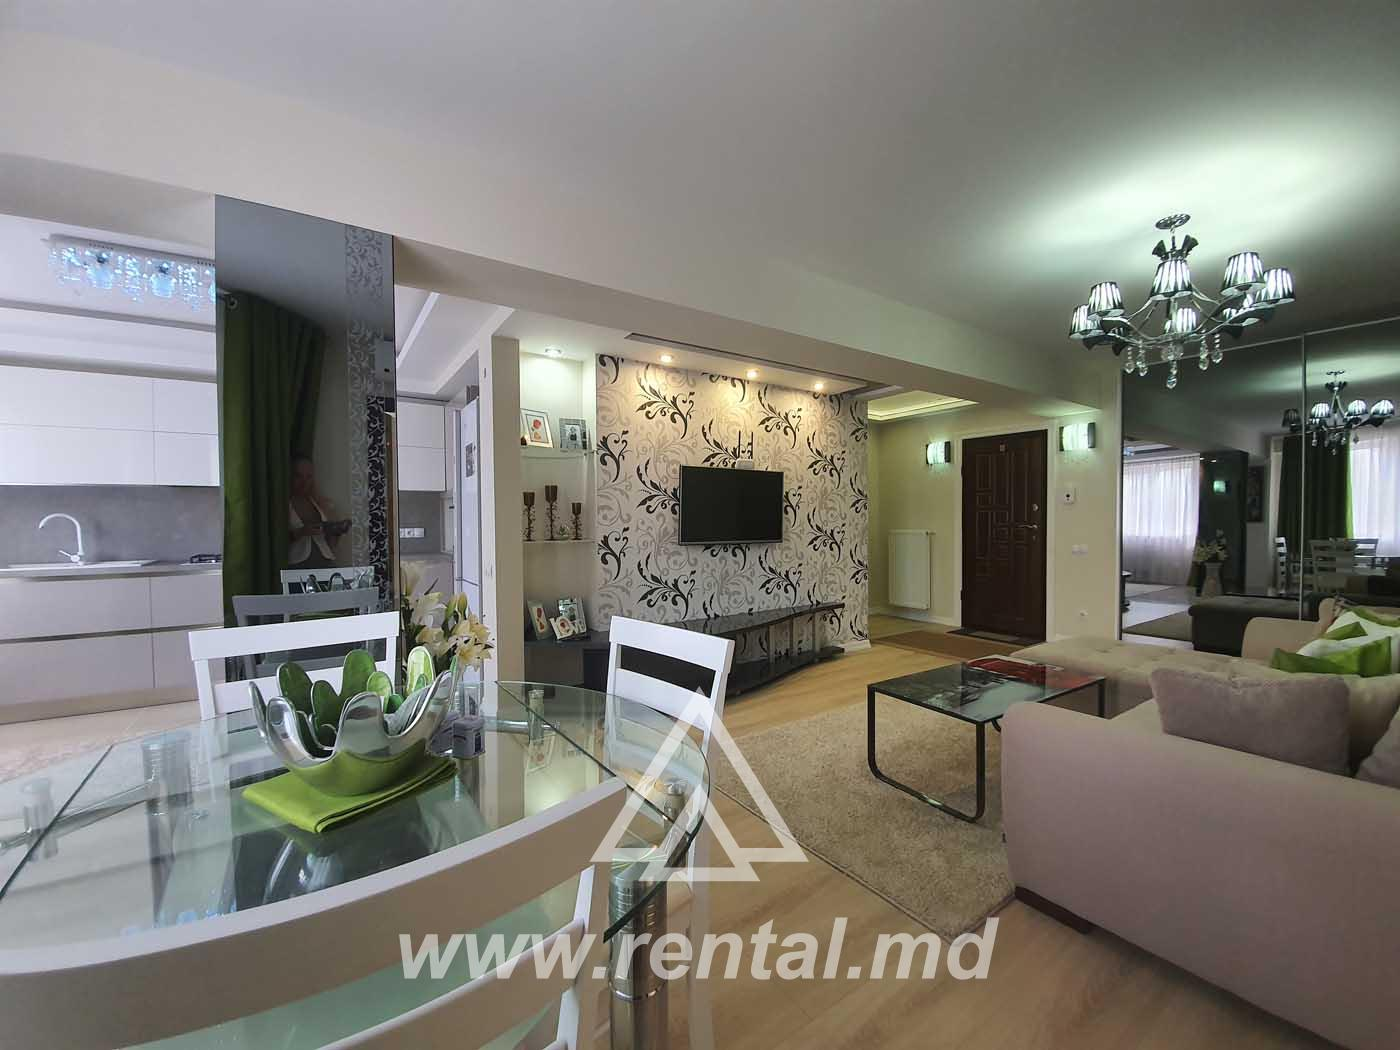 New apartment for rent near MallDova